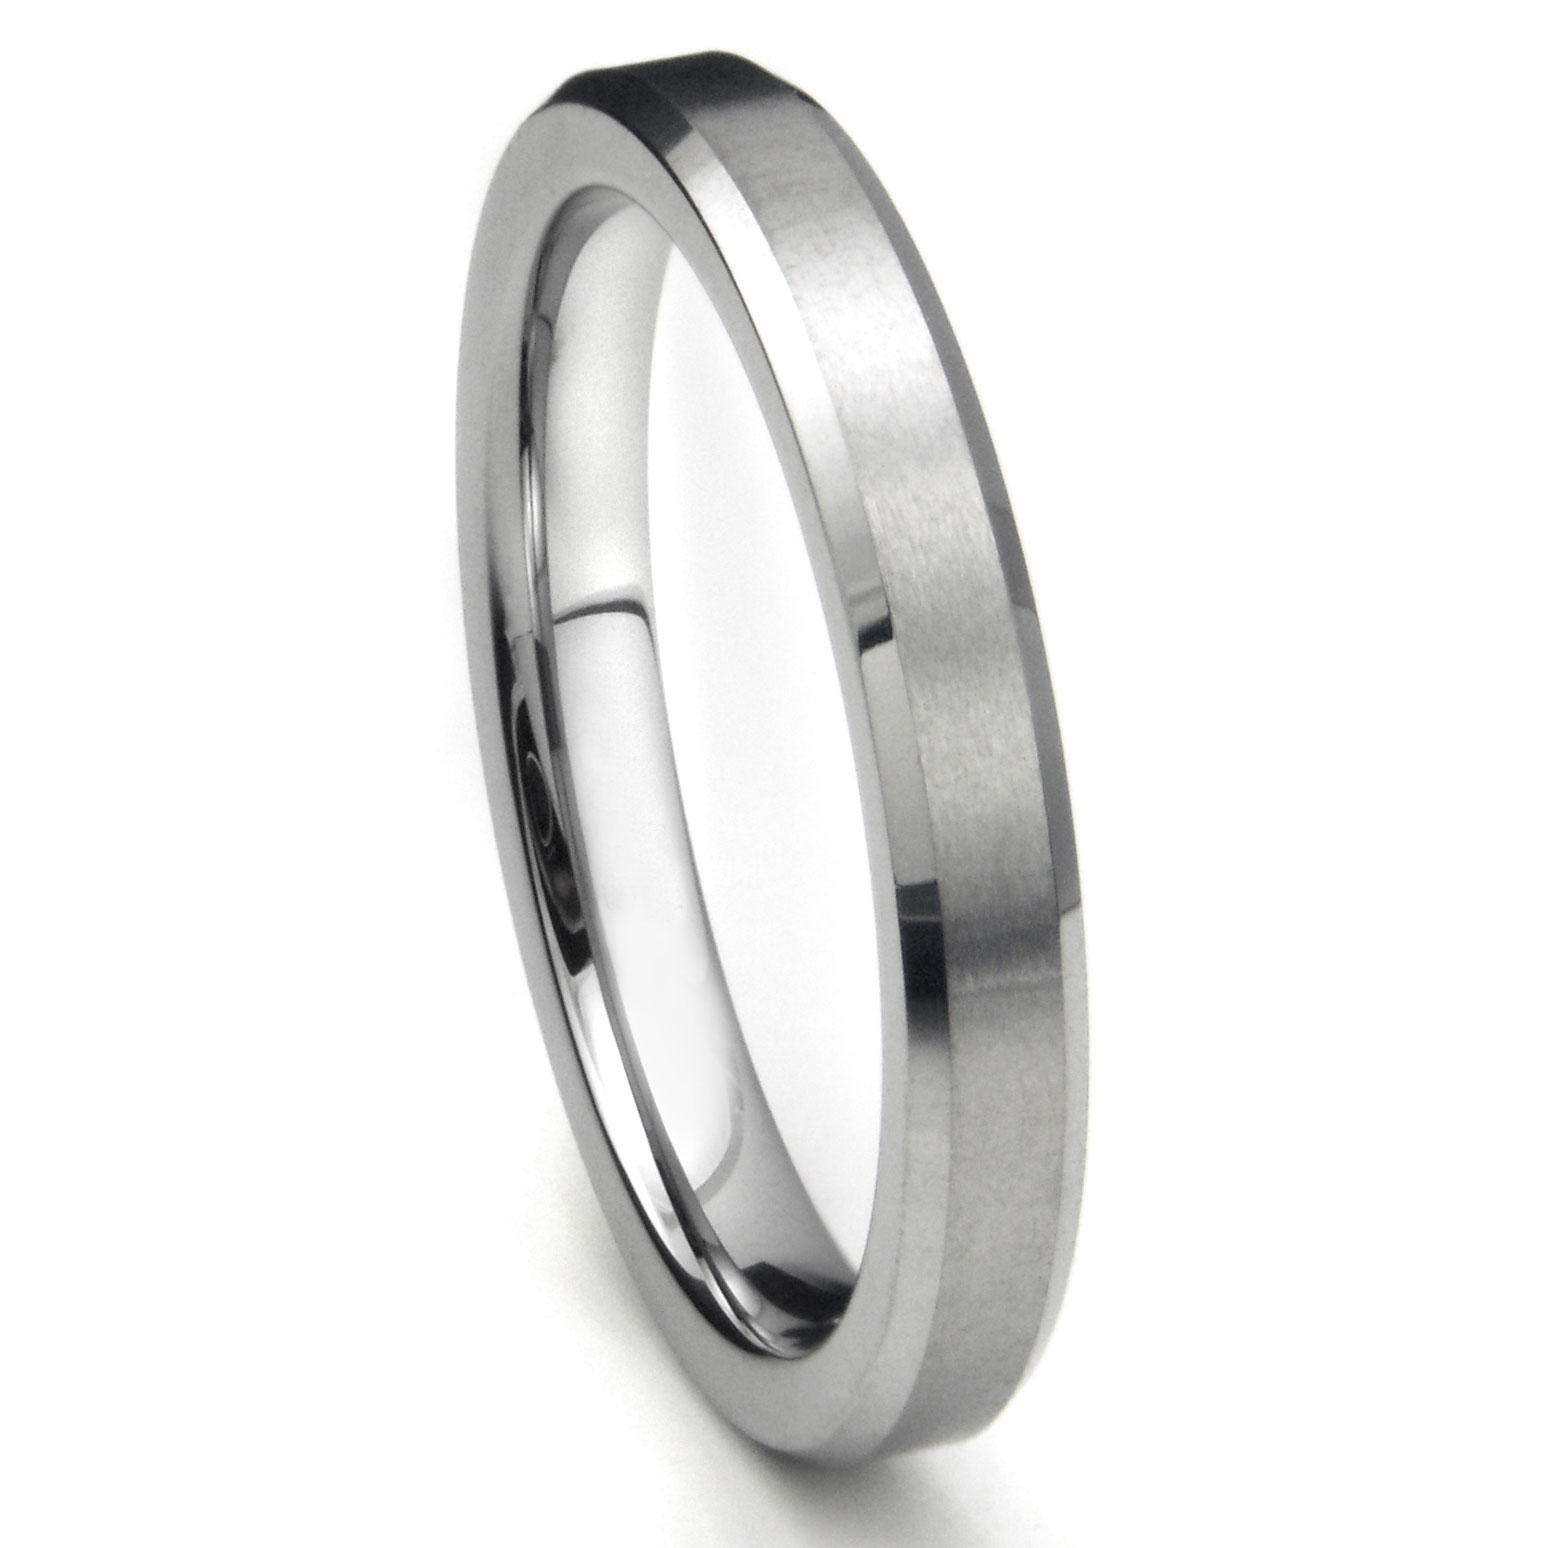 Tungsten Carbide 4mm Beveled Brush Finish Wedding Band Ring: Concave Brushed Wedding Band At Websimilar.org